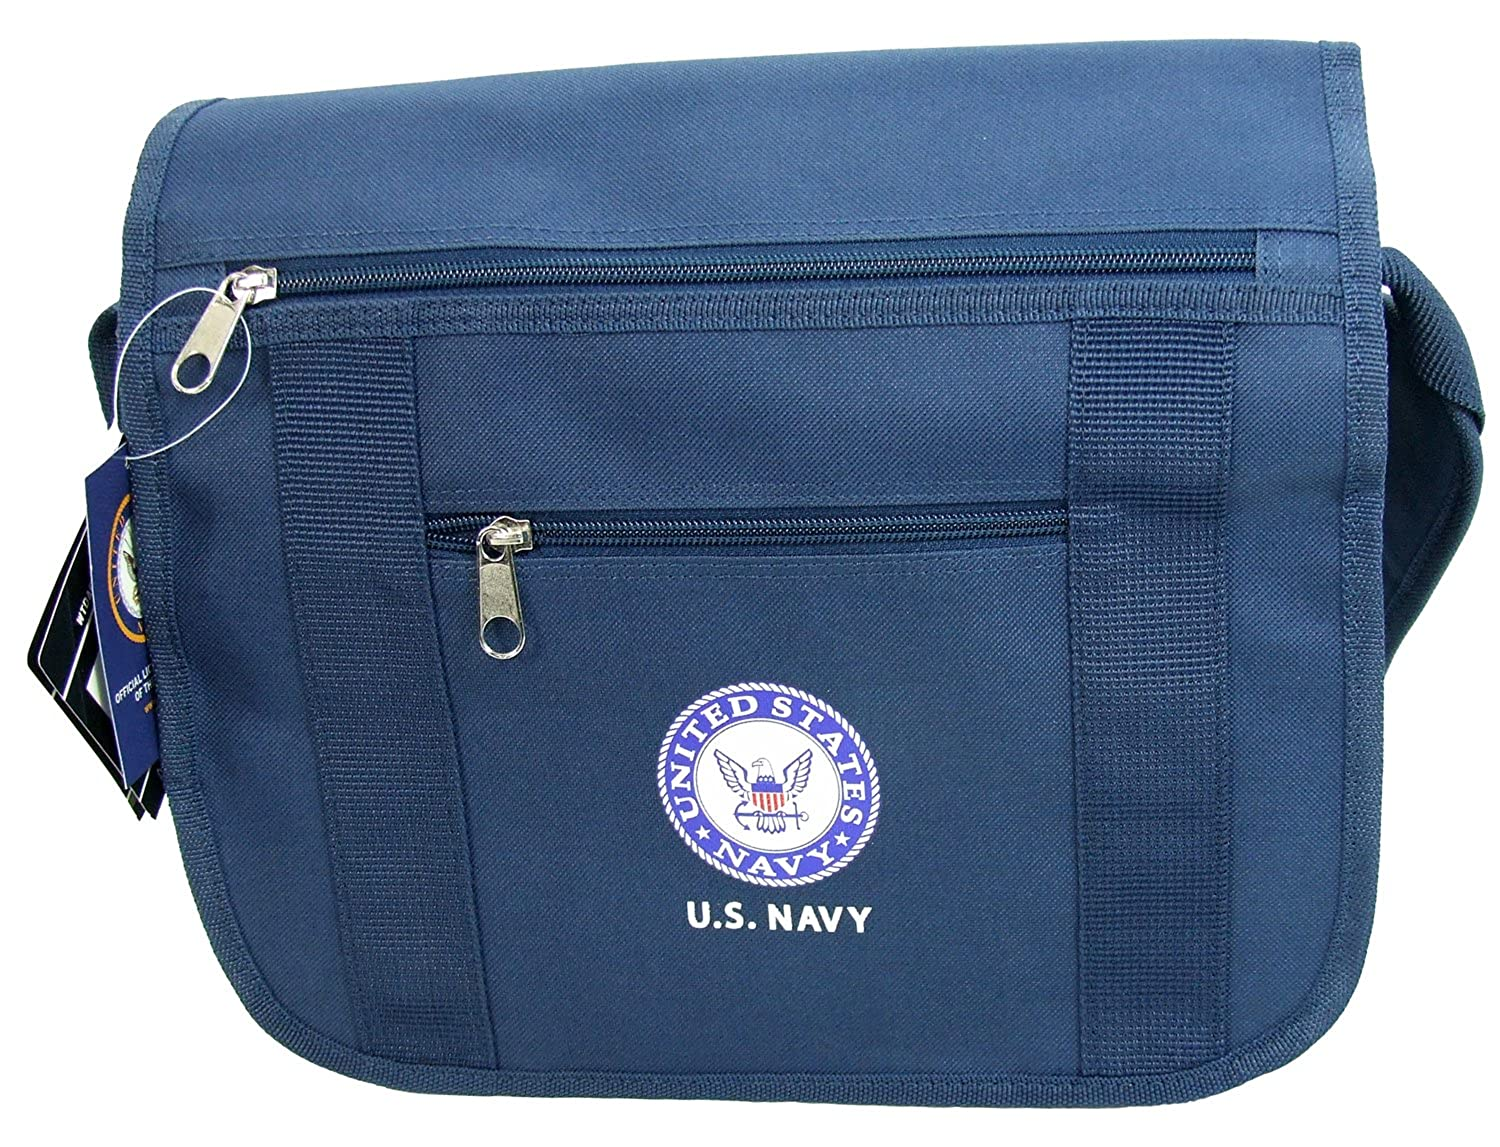 Military Style Small Size Messenger Bag